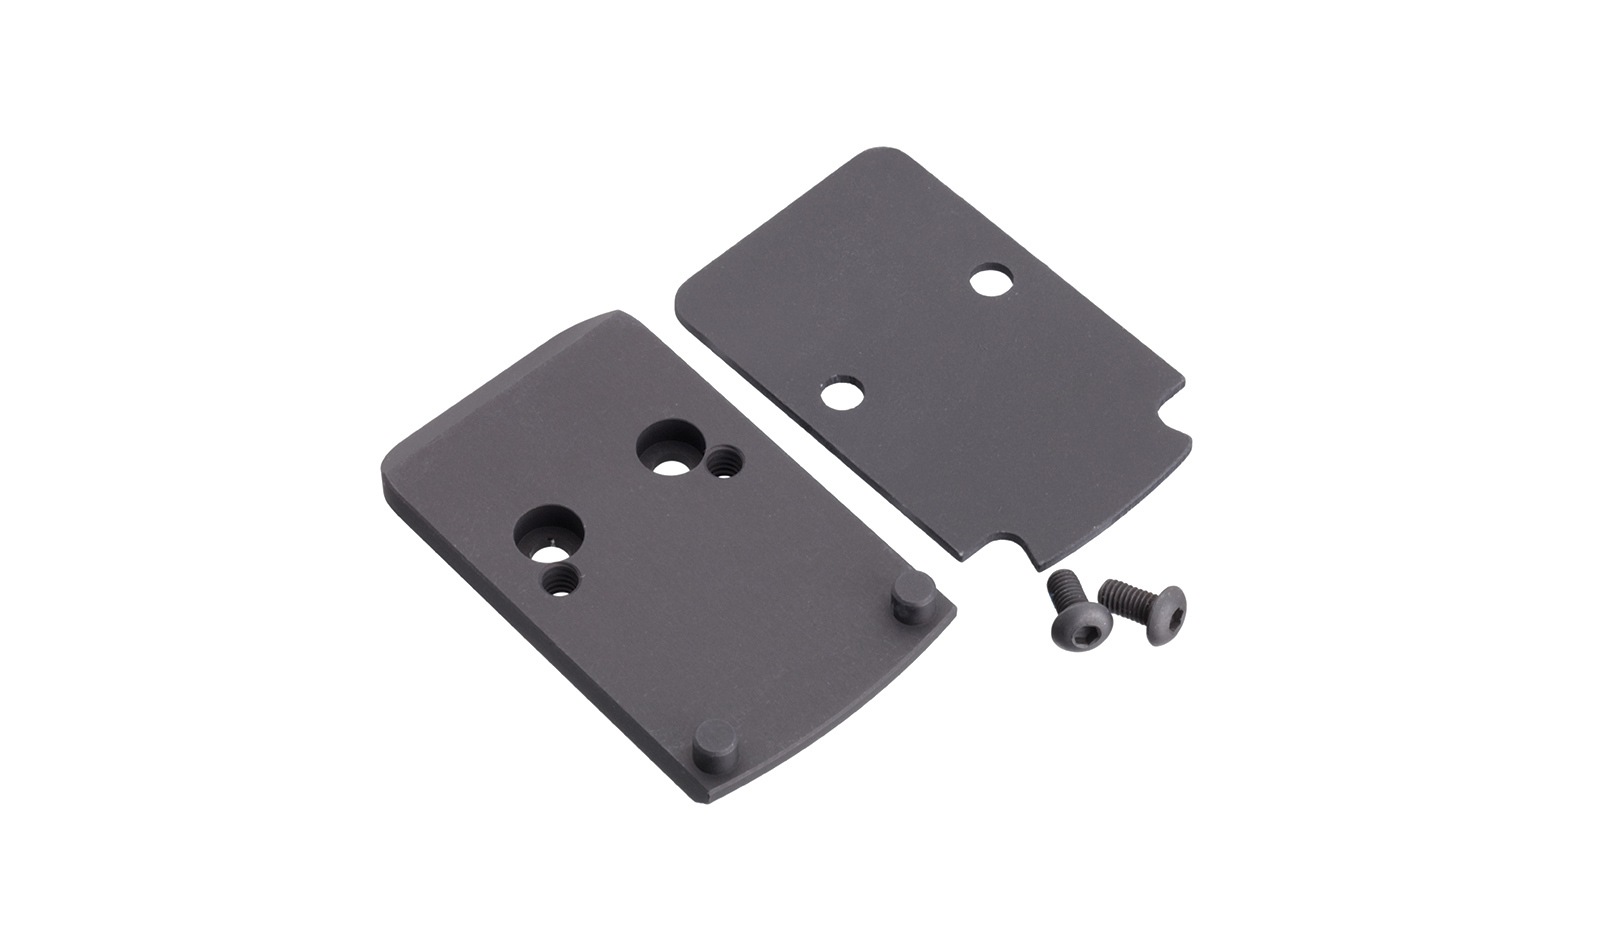 Trijicon RMR®/SRO® Adapter Plate for Docter Mounts (MS10-MS16)